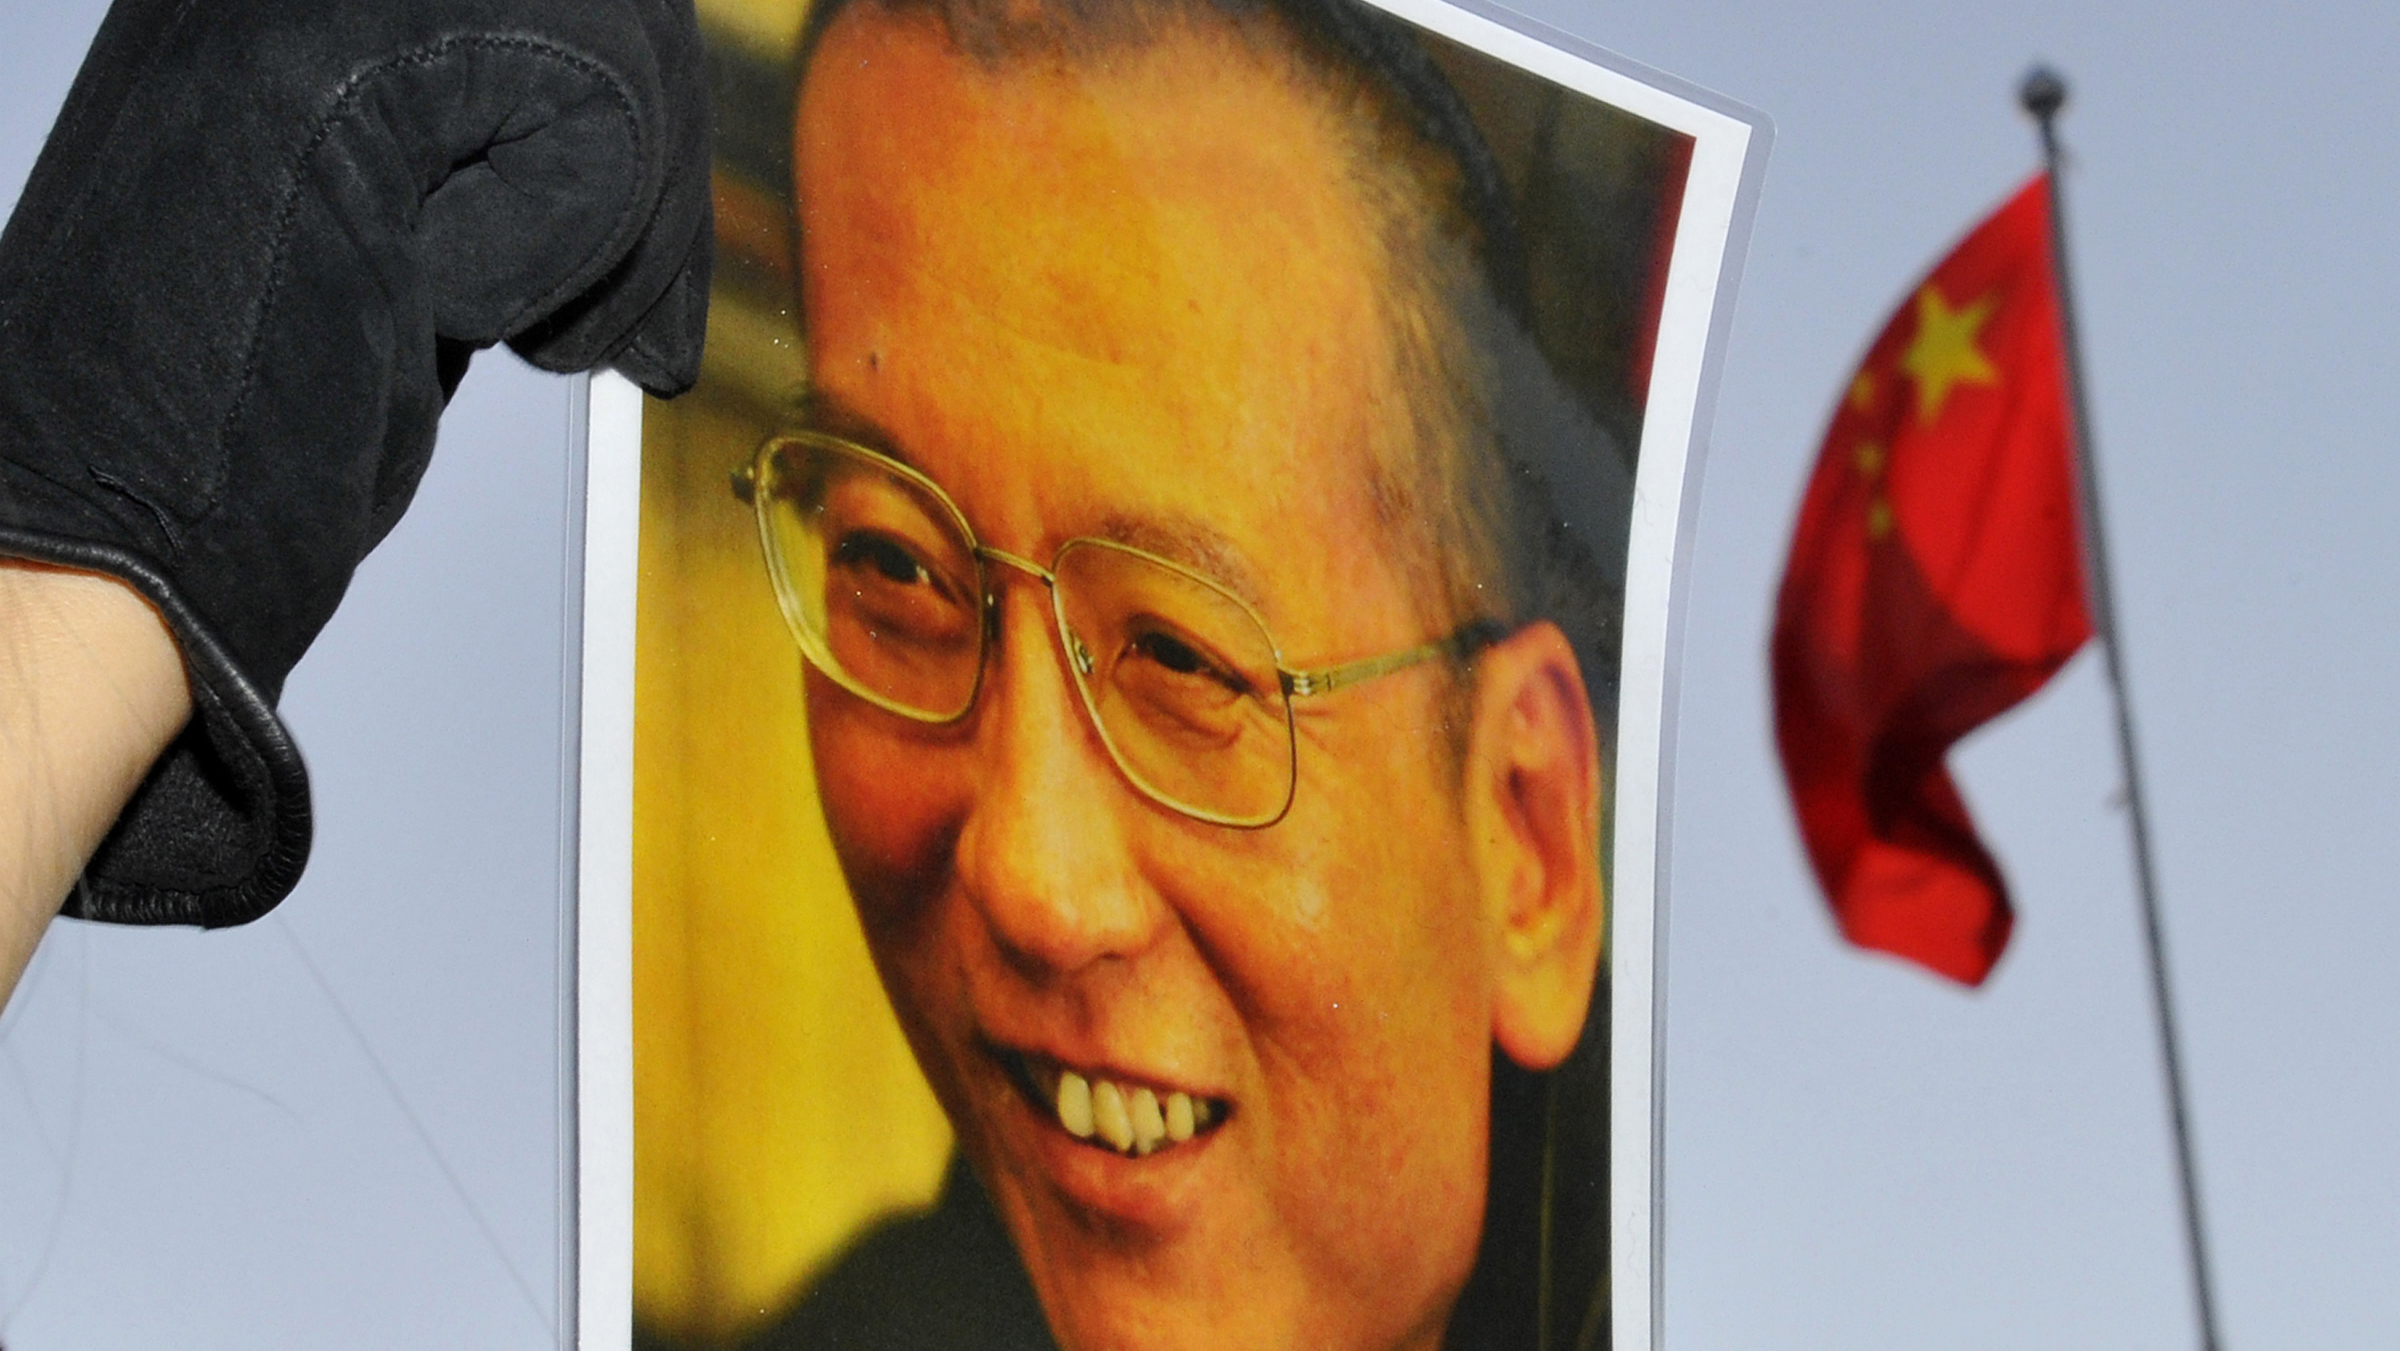 """A protester holds an image of to jailed dissident Liu Xiaobo outside of the Chinese Embassy in Oslo December 9, 2010. The Nobel Peace Prize panel on Thursday defended its award to jailed dissident Liu as based on """"universal values"""", rejecting Beijing's accusation that it is trying force Western ideas on China. The Nobel Peace Prize will be awarded to Liu Xiaobo on Friday. REUTERS/Toby Melville"""